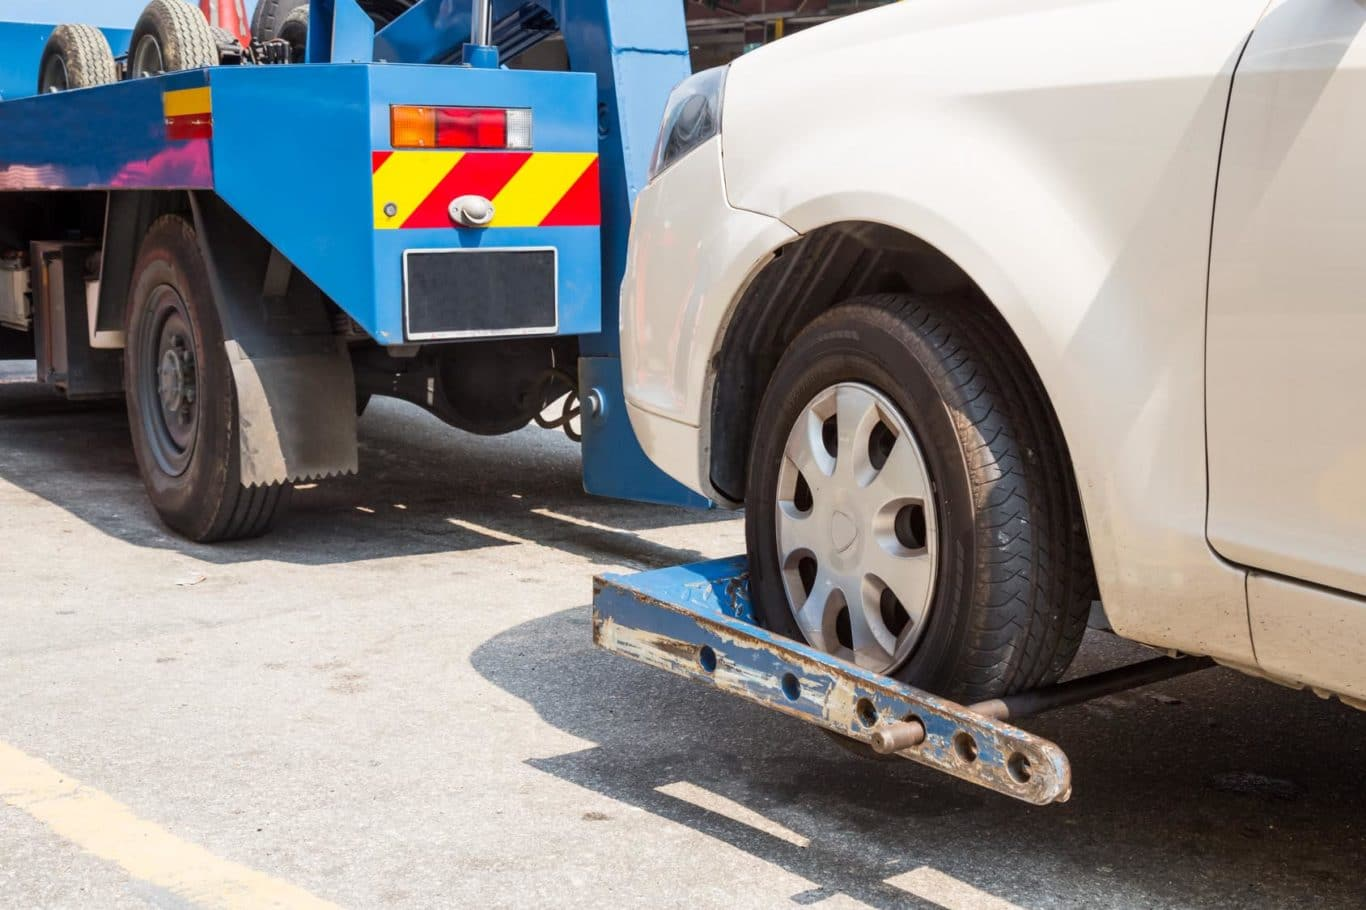 Irishtown expert Roadside Assistance services